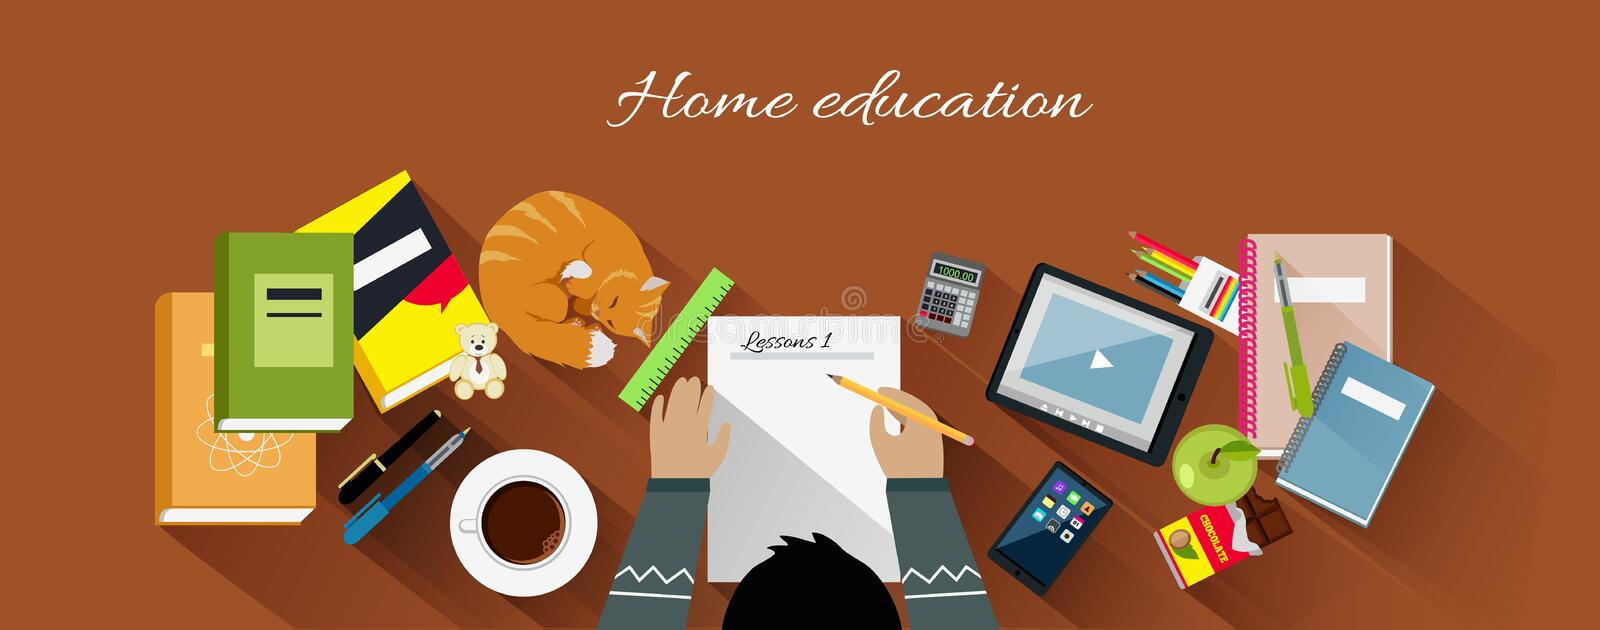 Home Education Flat Design Concept stock illustration